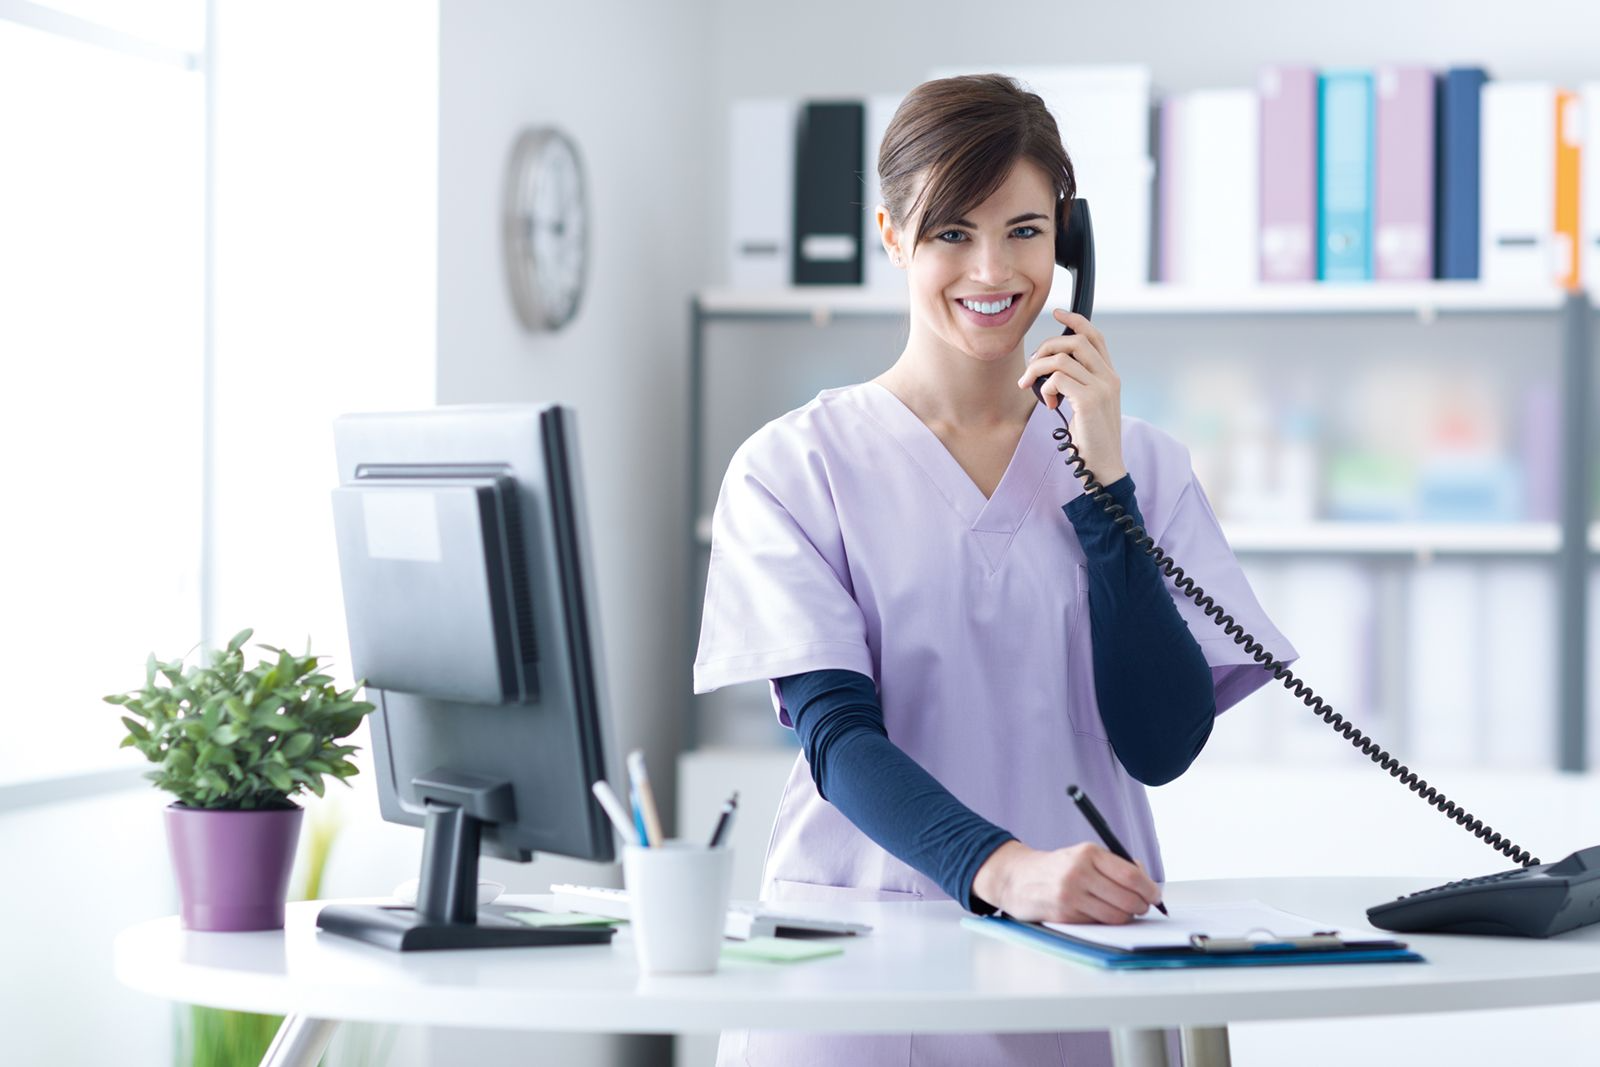 How to attract clients to your clinic